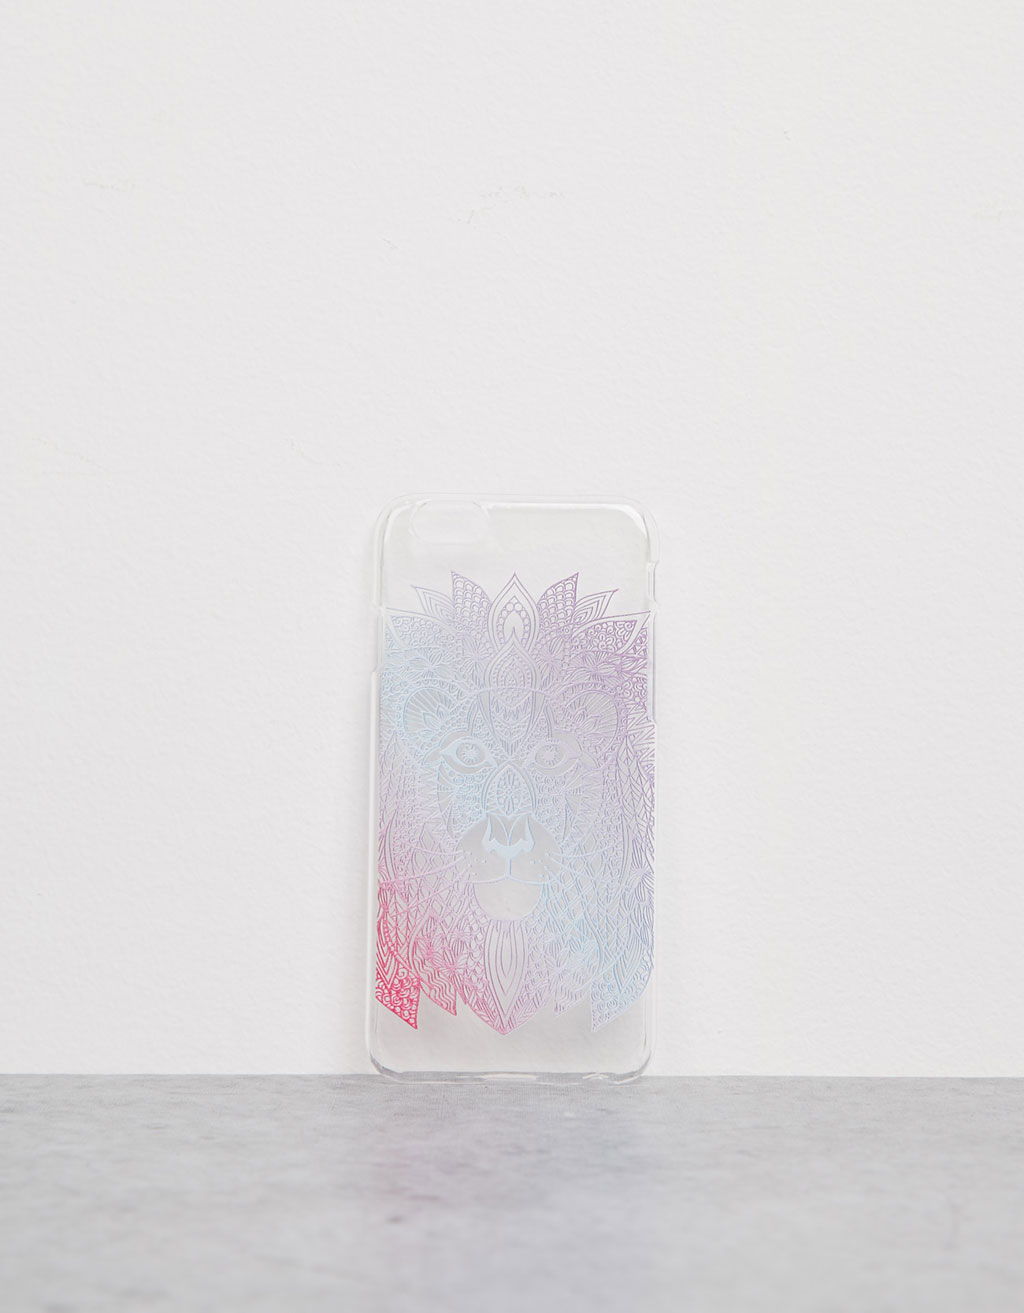 Carcasa transparente 'León étnico' relieve iPhone 6/6s